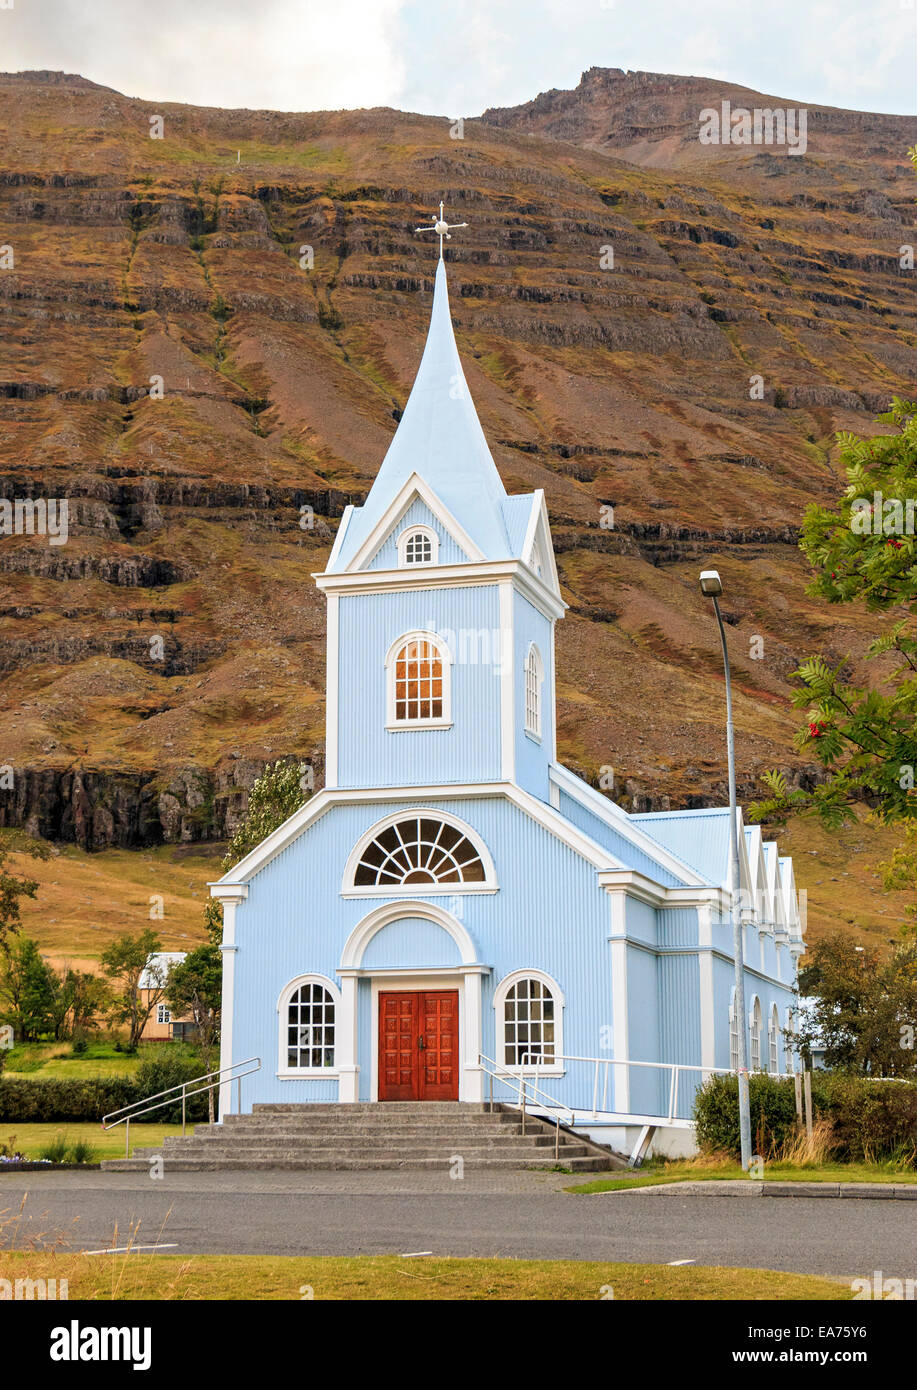 Church in the eastern Iceland town of Seydisfjordur. Locals call it simply Seydisfjordur Church and also, the Blue - Stock Image